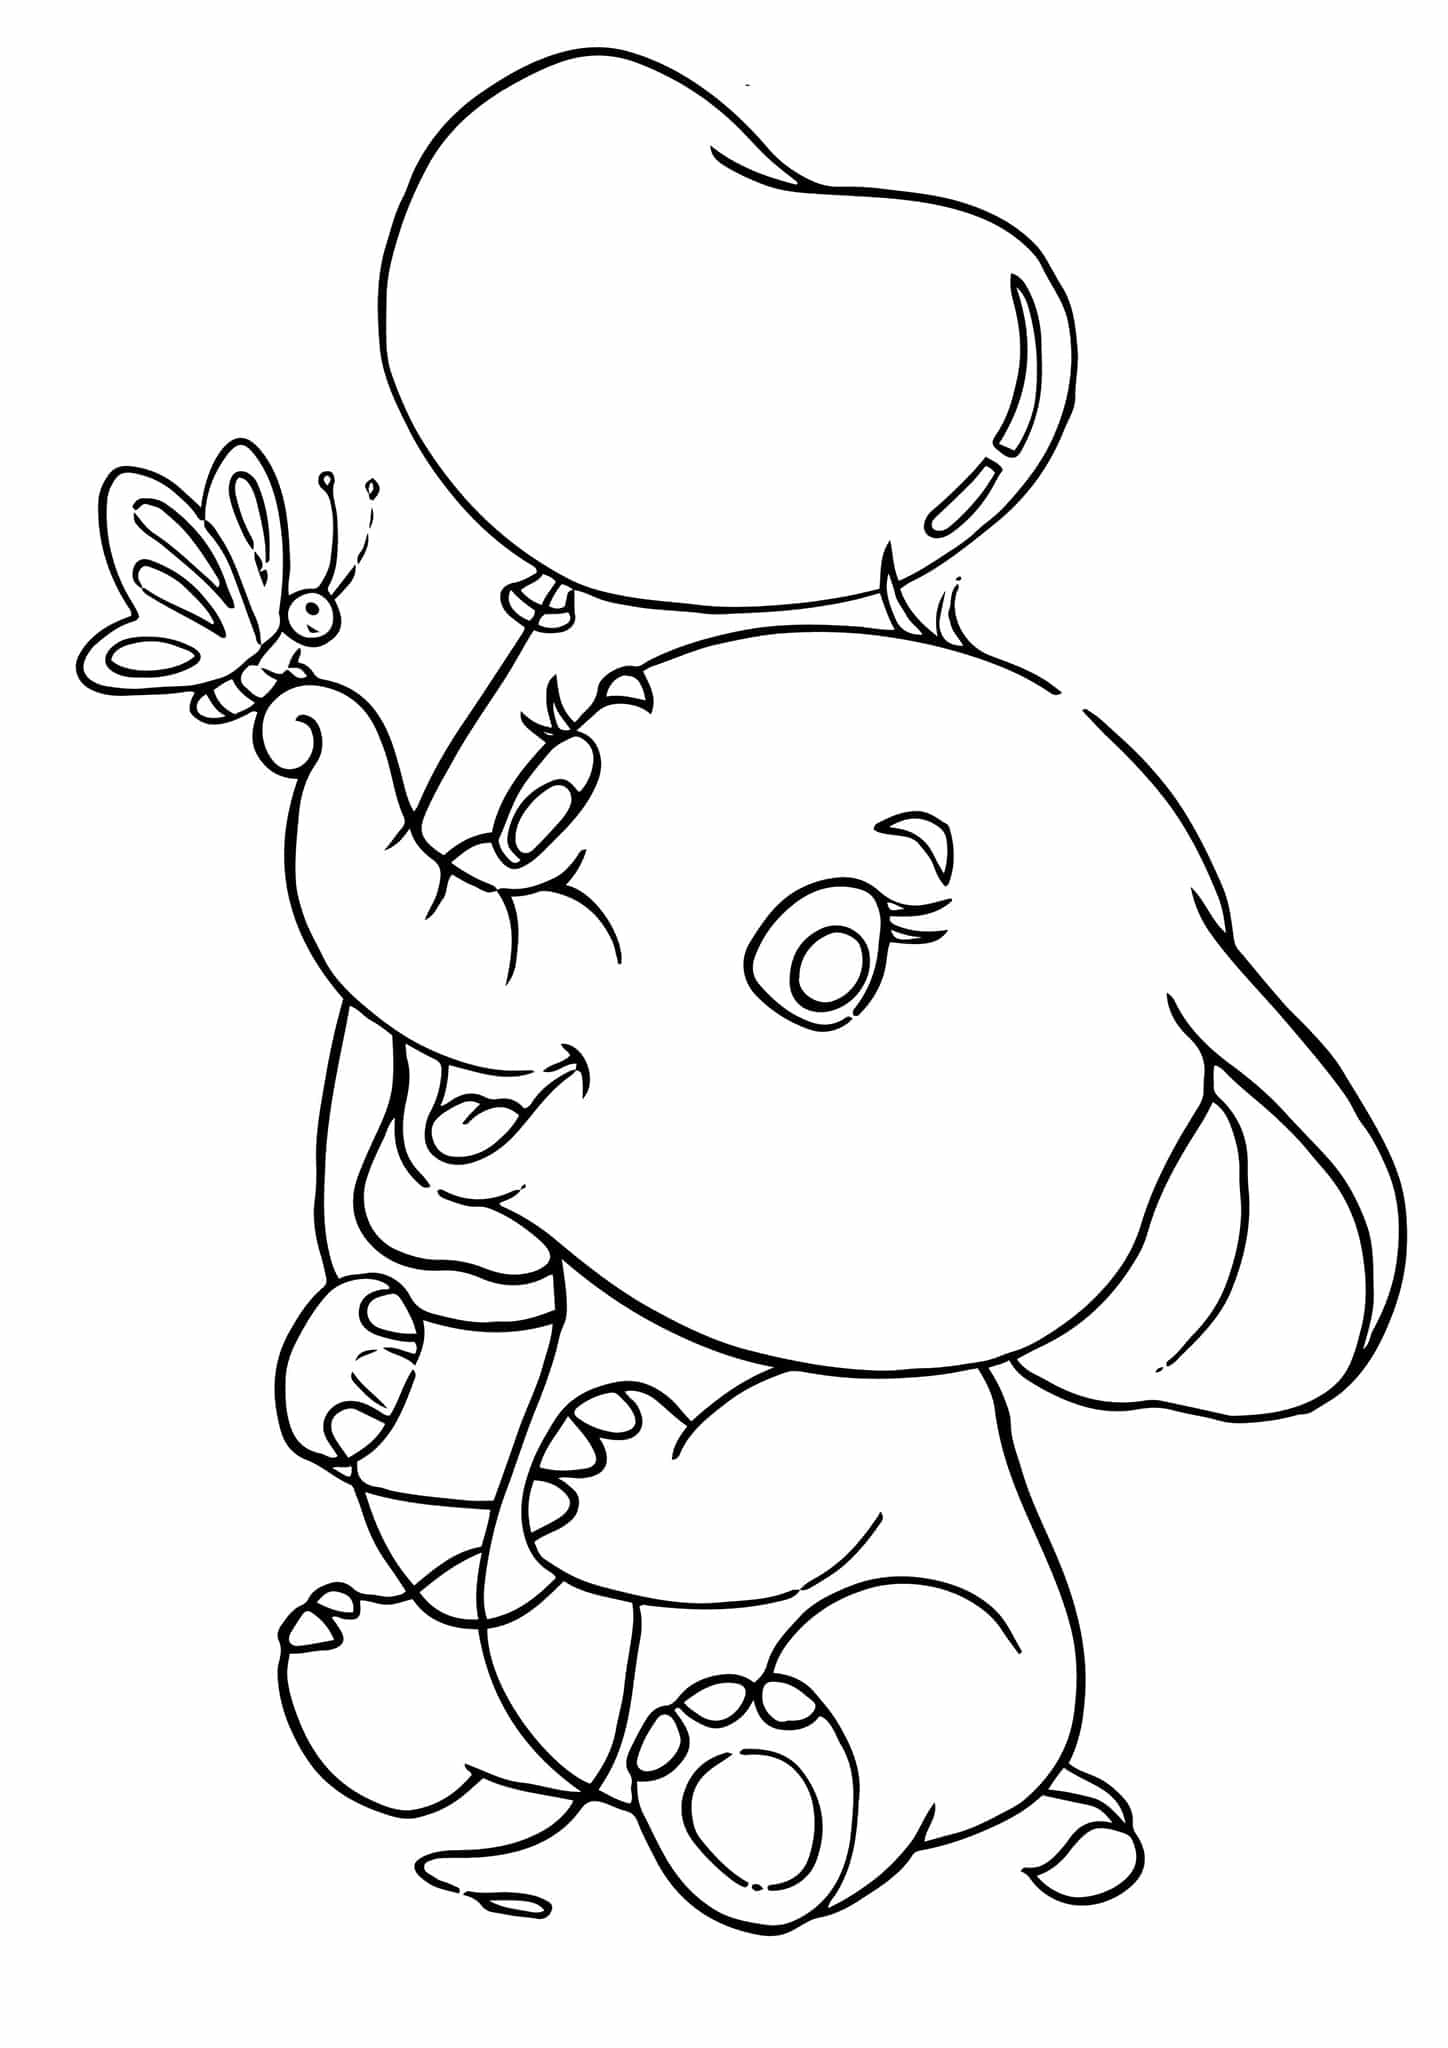 simple elephant coloring page elephant coloring pages for adults best coloring pages page simple coloring elephant